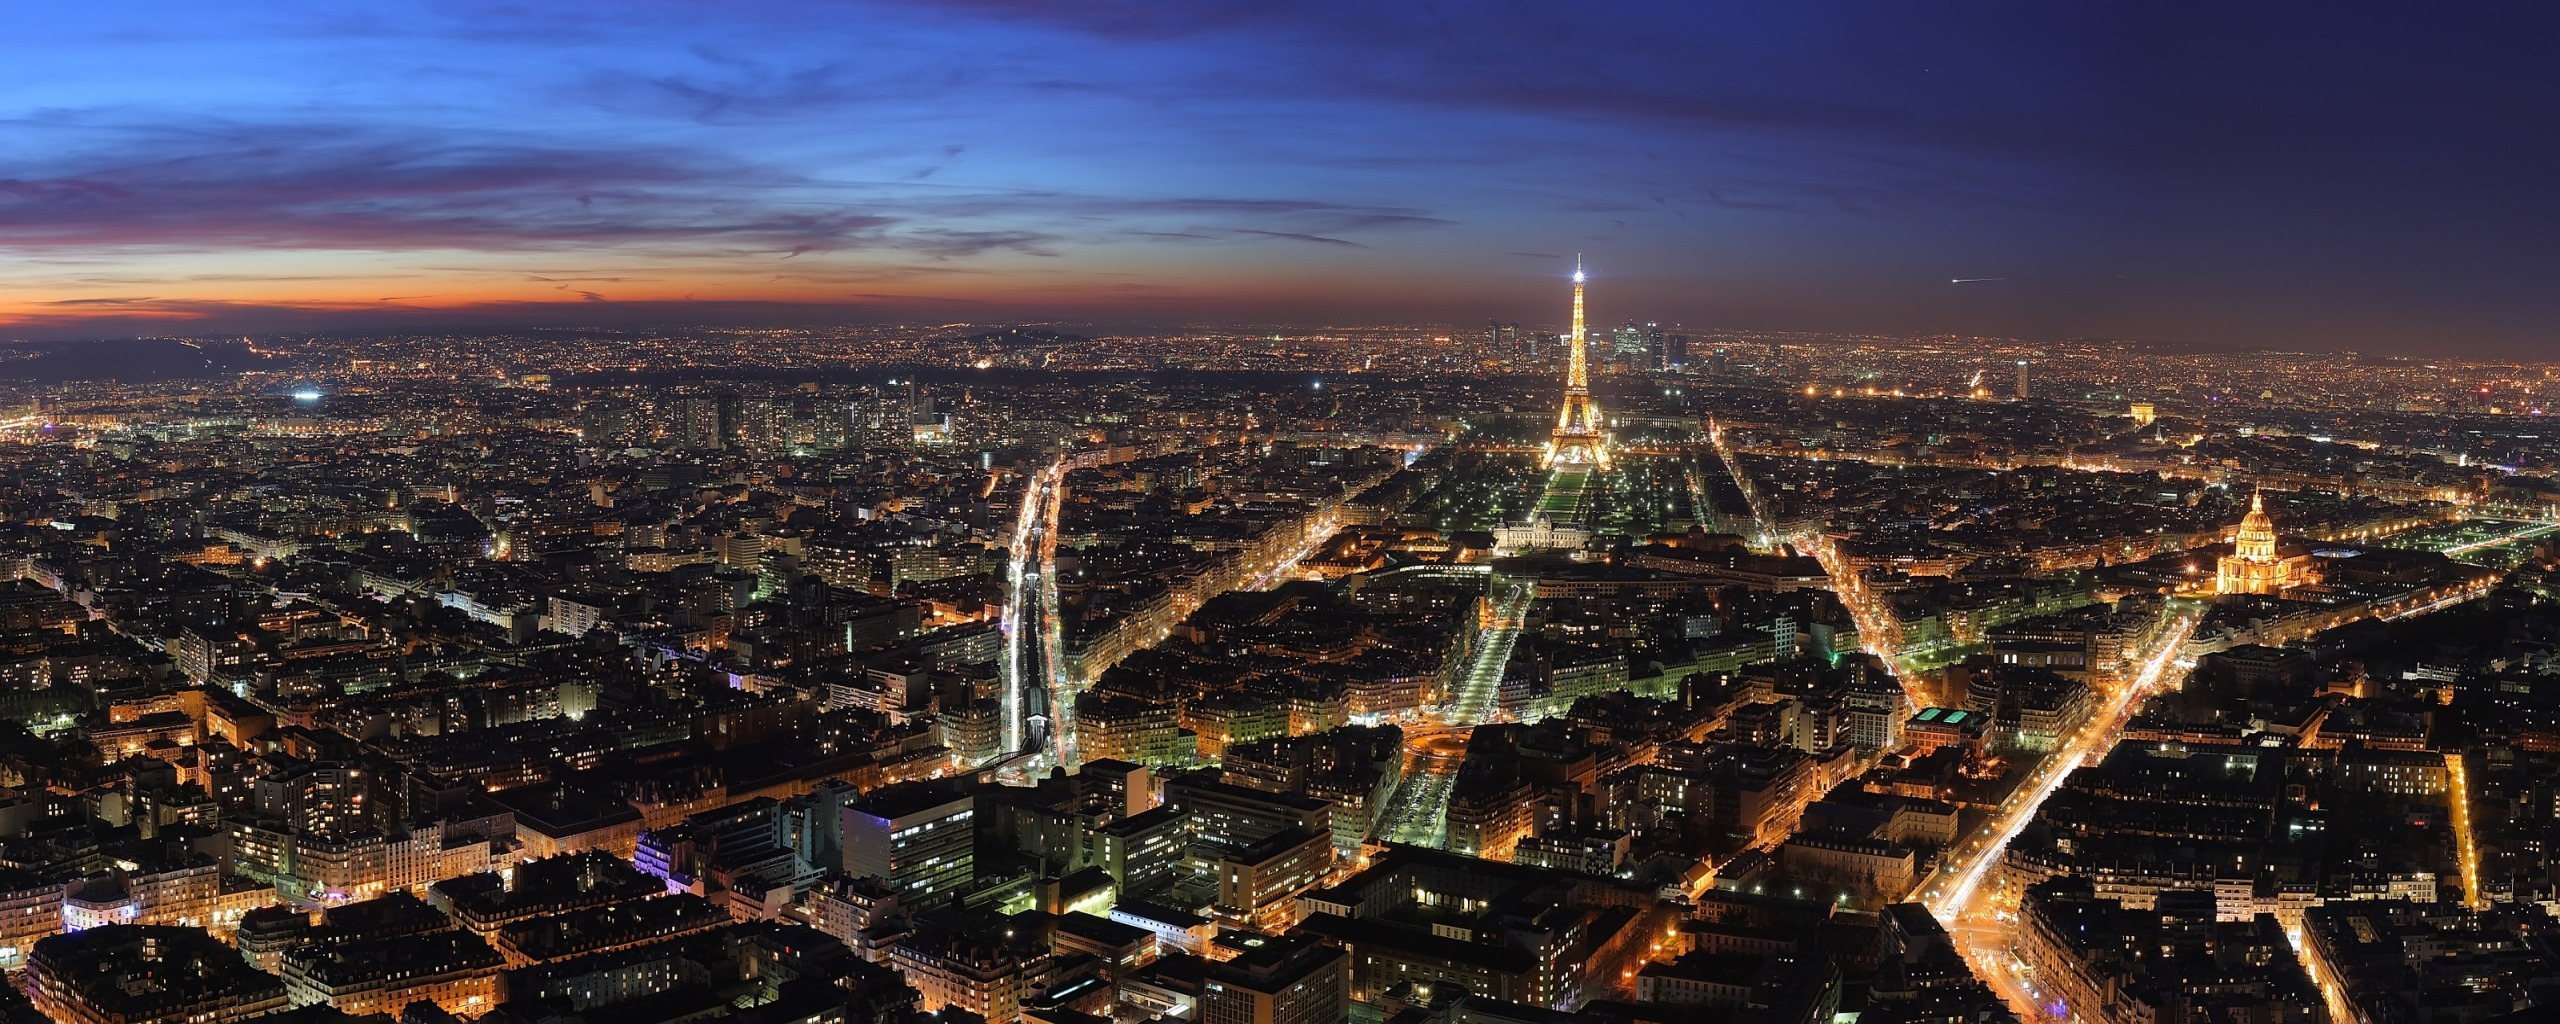 nightlife in paris | parisbym